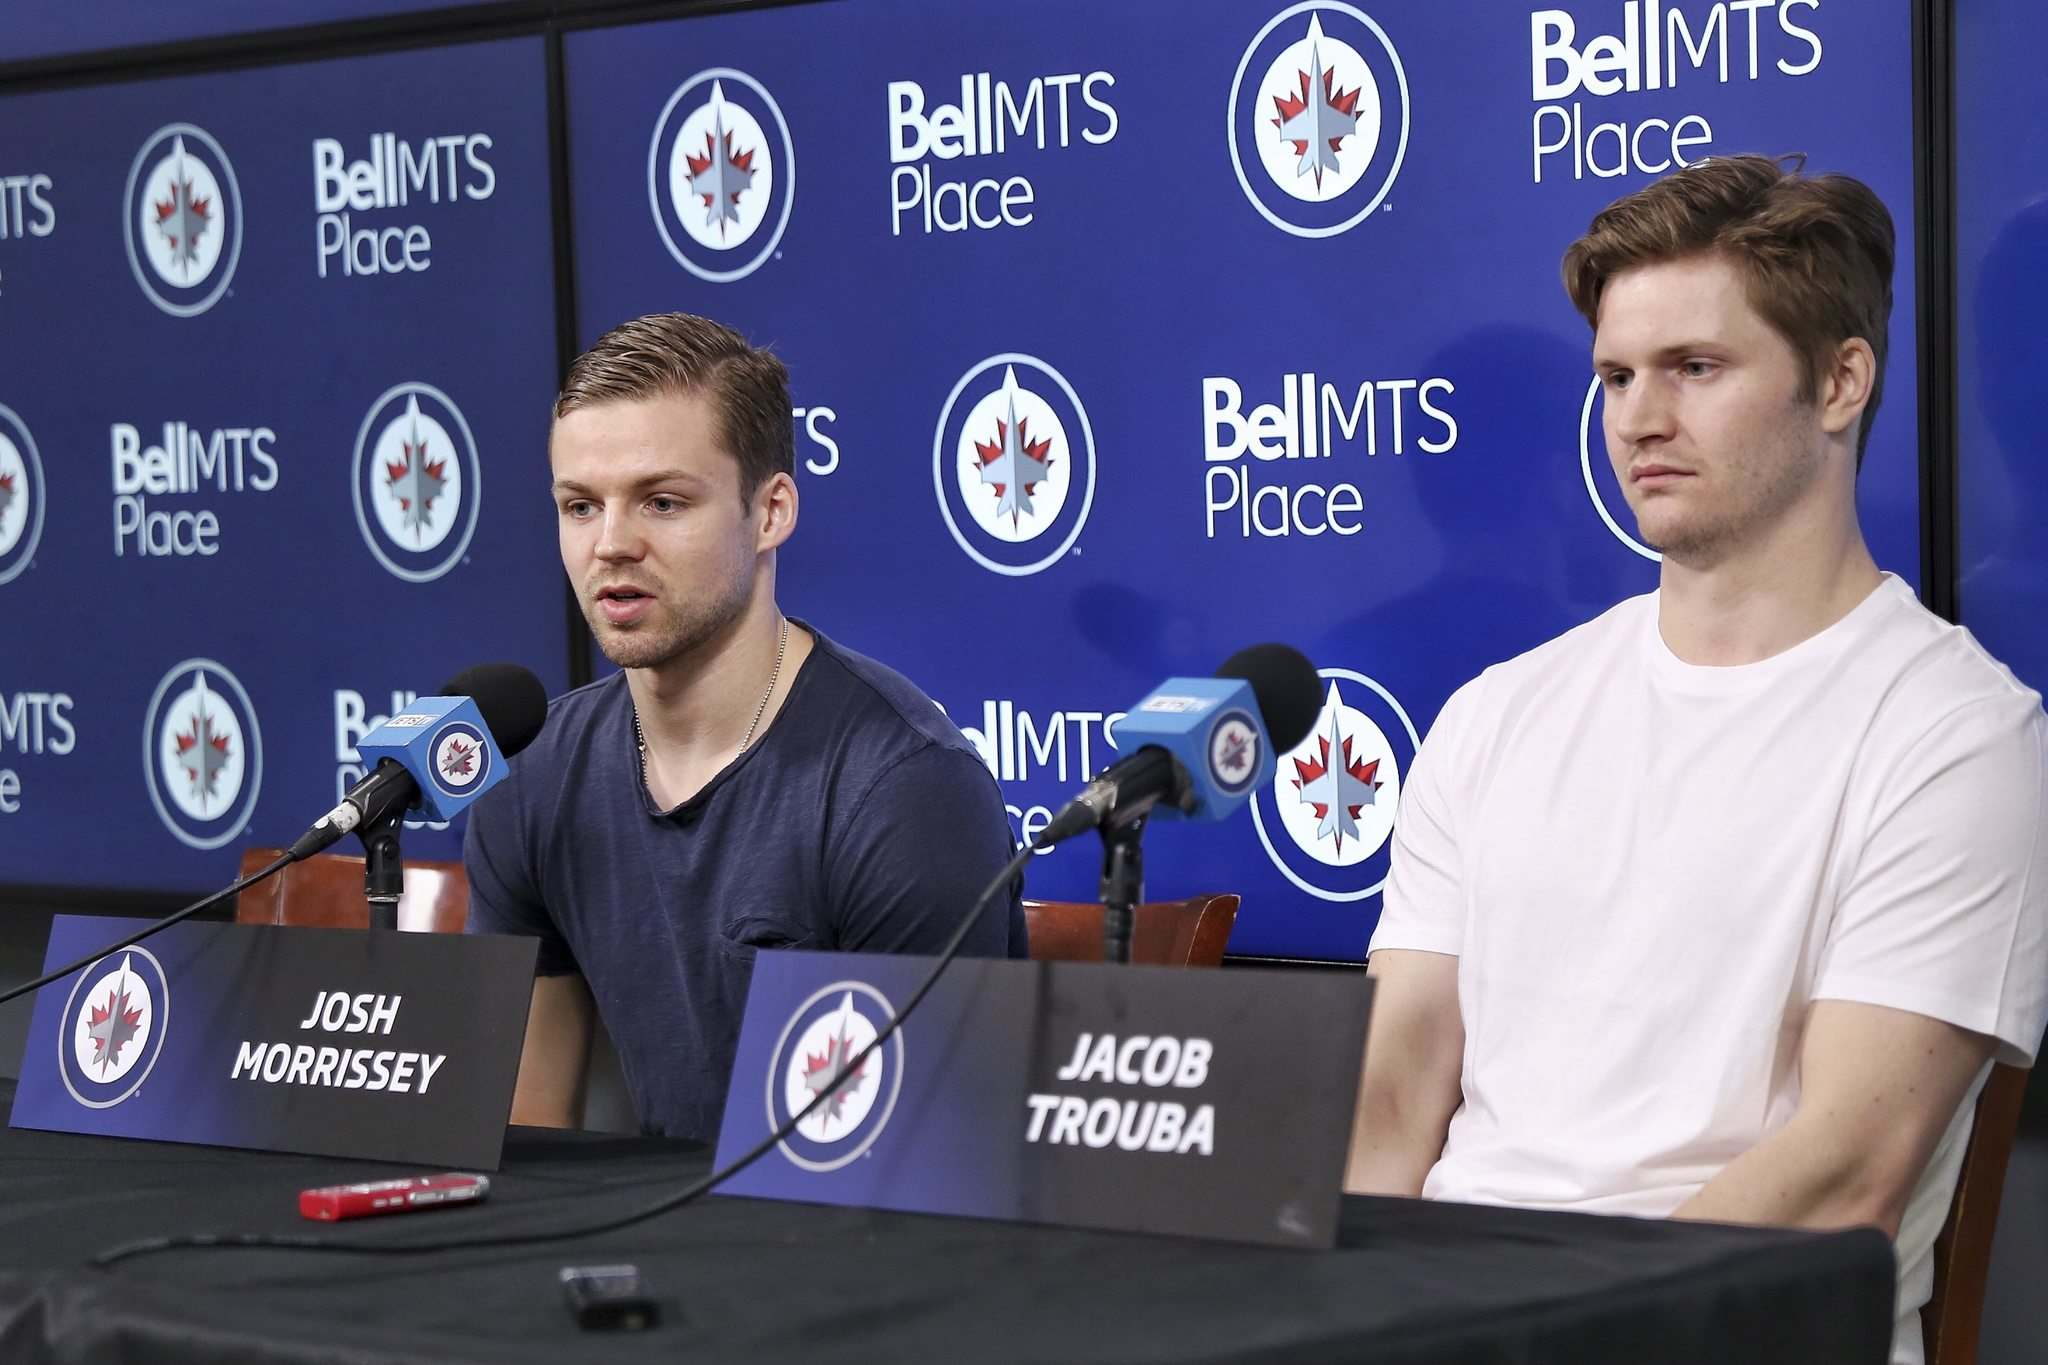 &#34;I haven&#39;t put a whole ton of thought into it. The season just ended,&#34; said Jacob Trouba (right, with Josh Morrissey). &#34;But I&#39;m sure in the next week or two, or couple of days, I&#39;ll meet with my agent and we&#39;ll go over stuff and see where it goes from there and talk to (Winnipeg GM Kevin Cheveldayoff).&#34;</p>